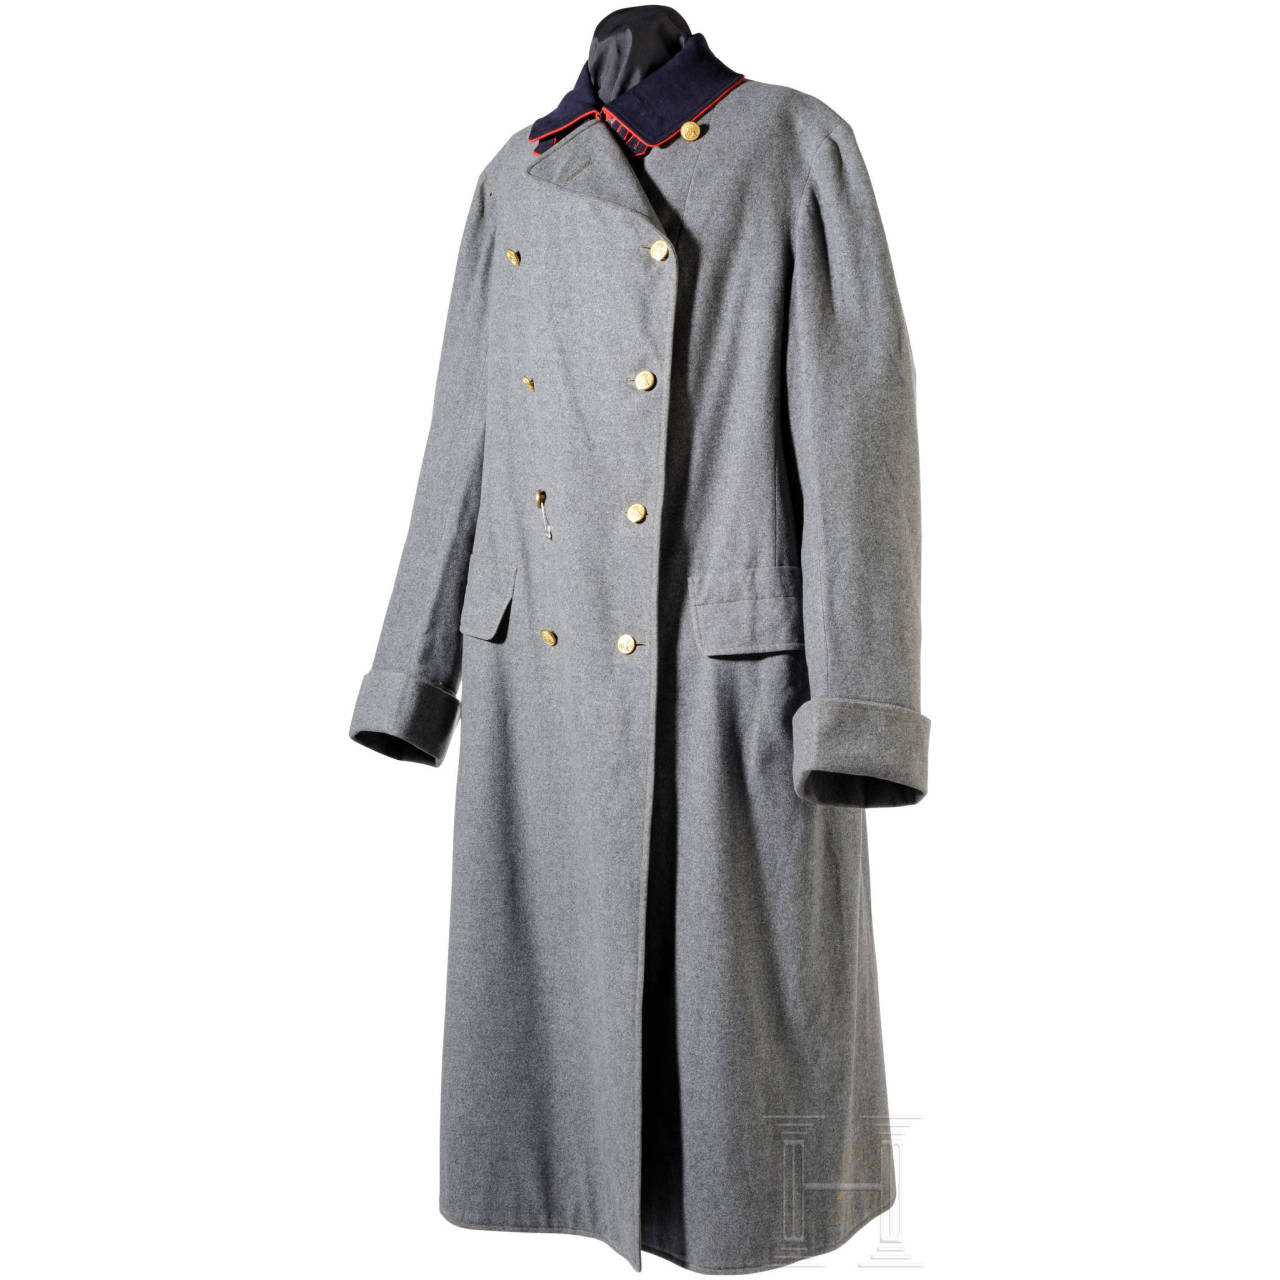 Ernst August (II.) of Hanover (1845 - 1923) - his personal field grey overcoat as a general